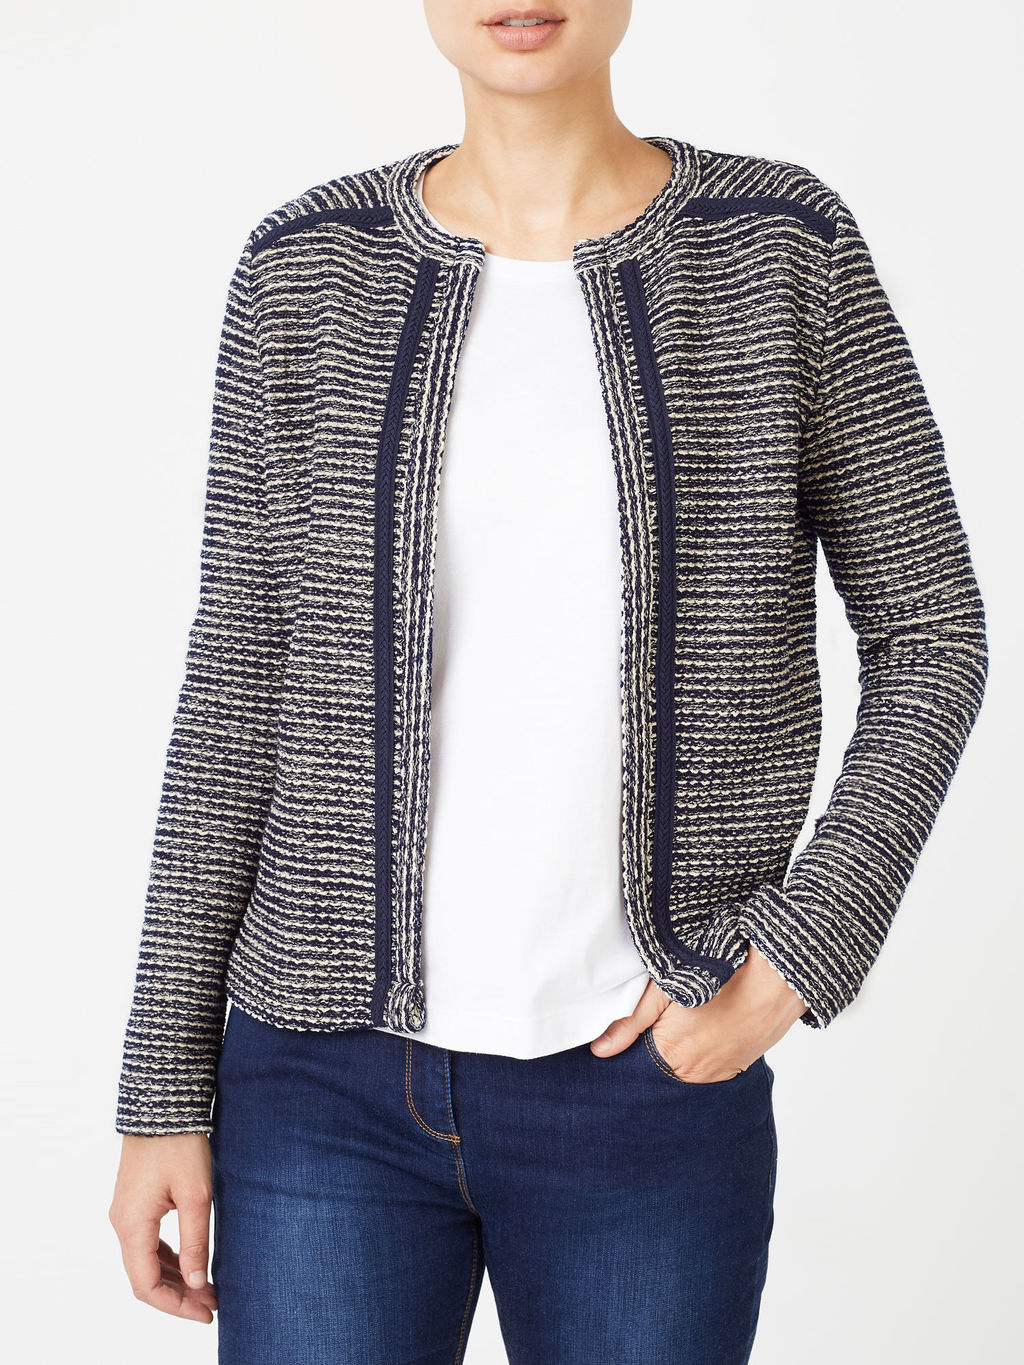 Boucle Jacket - pattern: plain; collar: round collar/collarless; style: boxy; secondary colour: white; predominant colour: royal blue; occasions: casual, creative work; length: standard; fit: straight cut (boxy); fibres: cotton - mix; sleeve length: long sleeve; sleeve style: standard; collar break: low/open; pattern type: fabric; texture group: tweed - bulky/heavy; season: a/w 2016; wardrobe: highlight